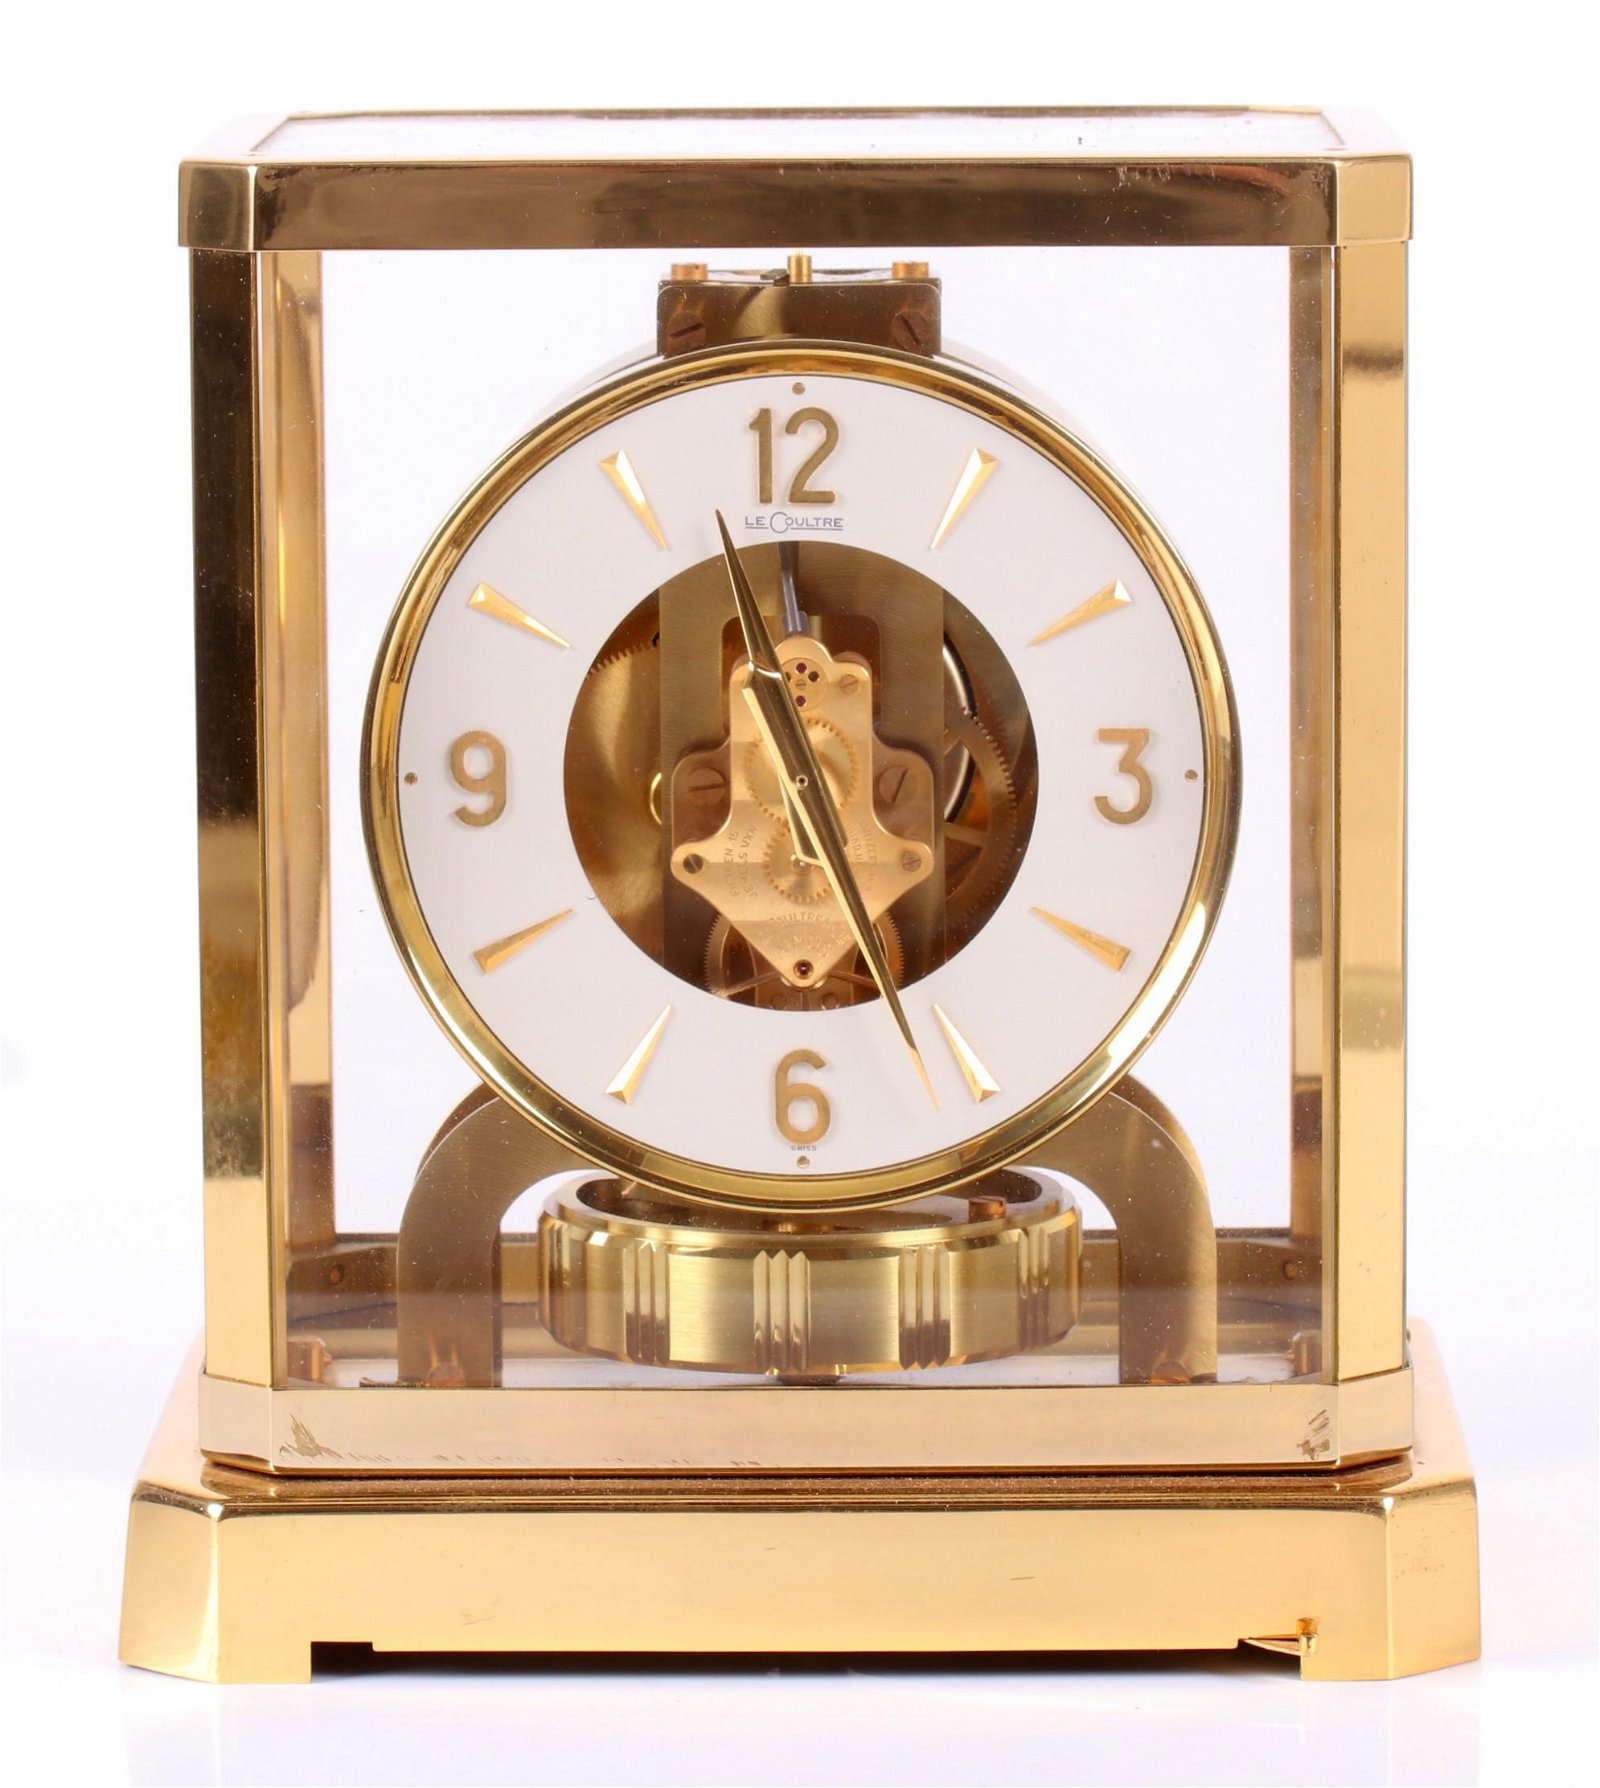 An Atmos Clock by Jaeger Lecoultre